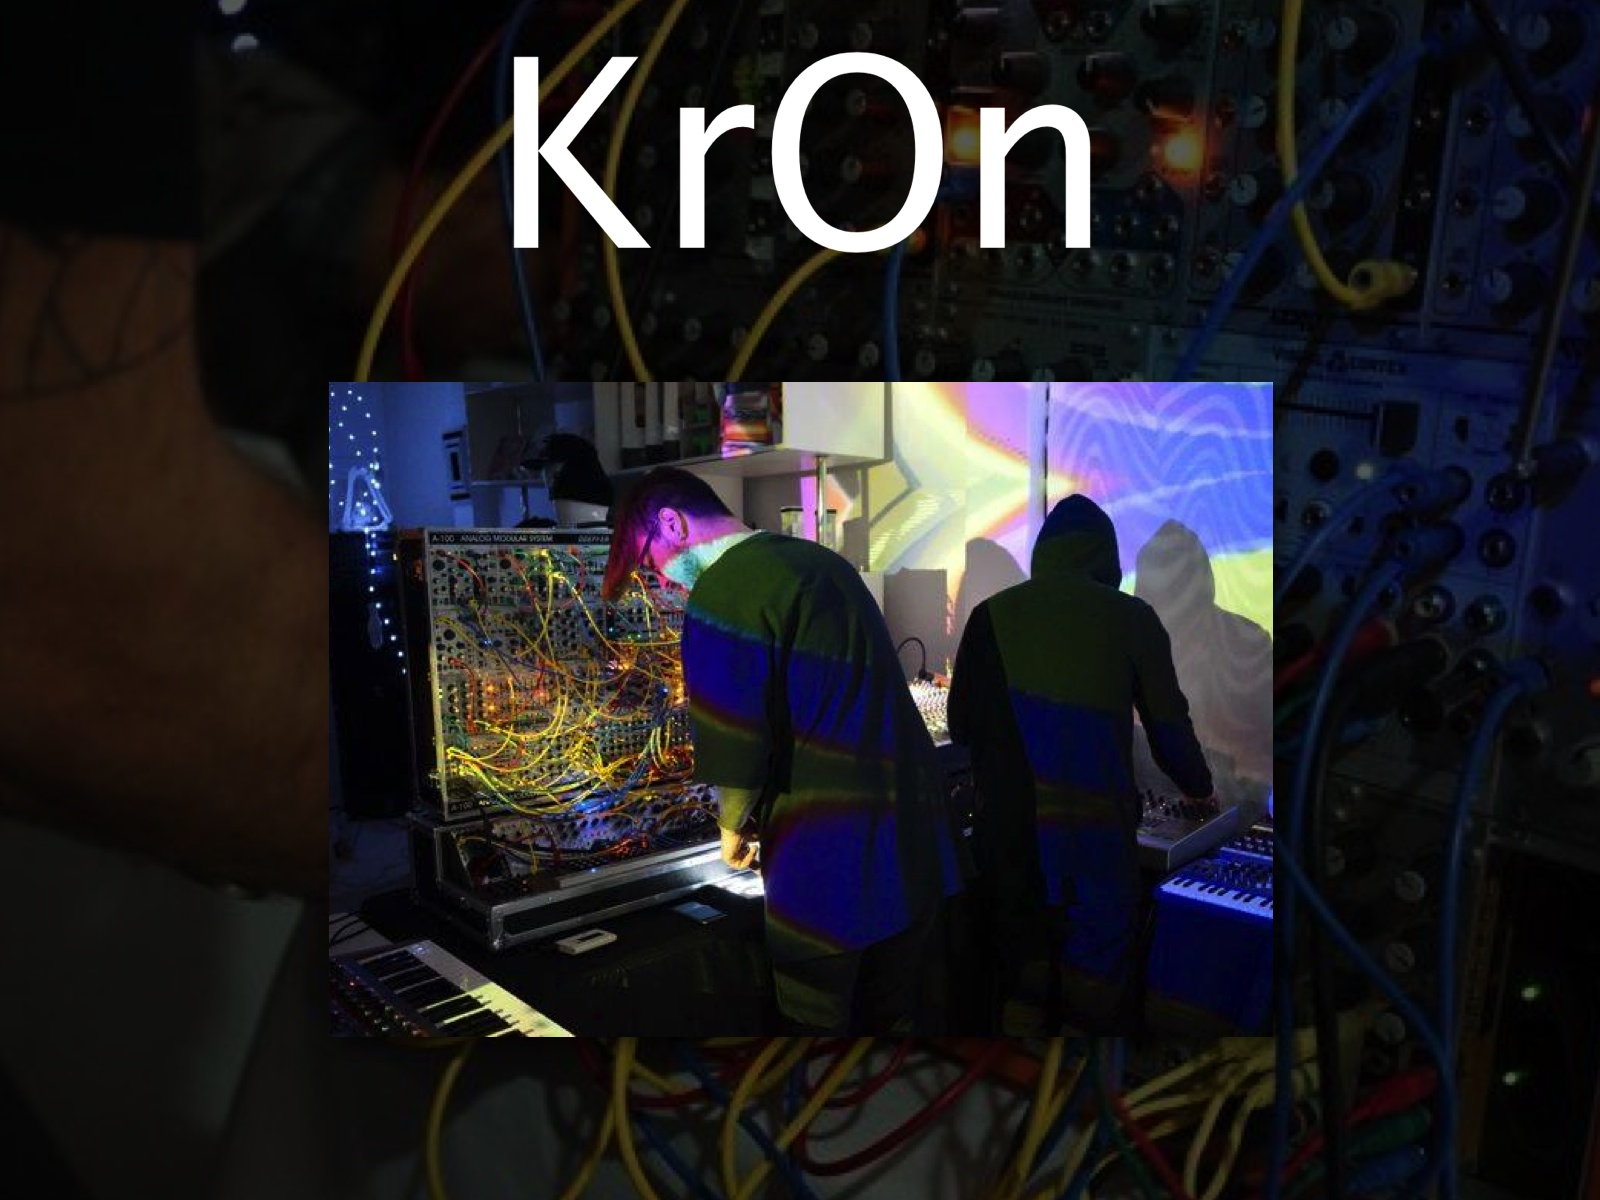 KRON AUDIO/VISUAL ELECTEONIC